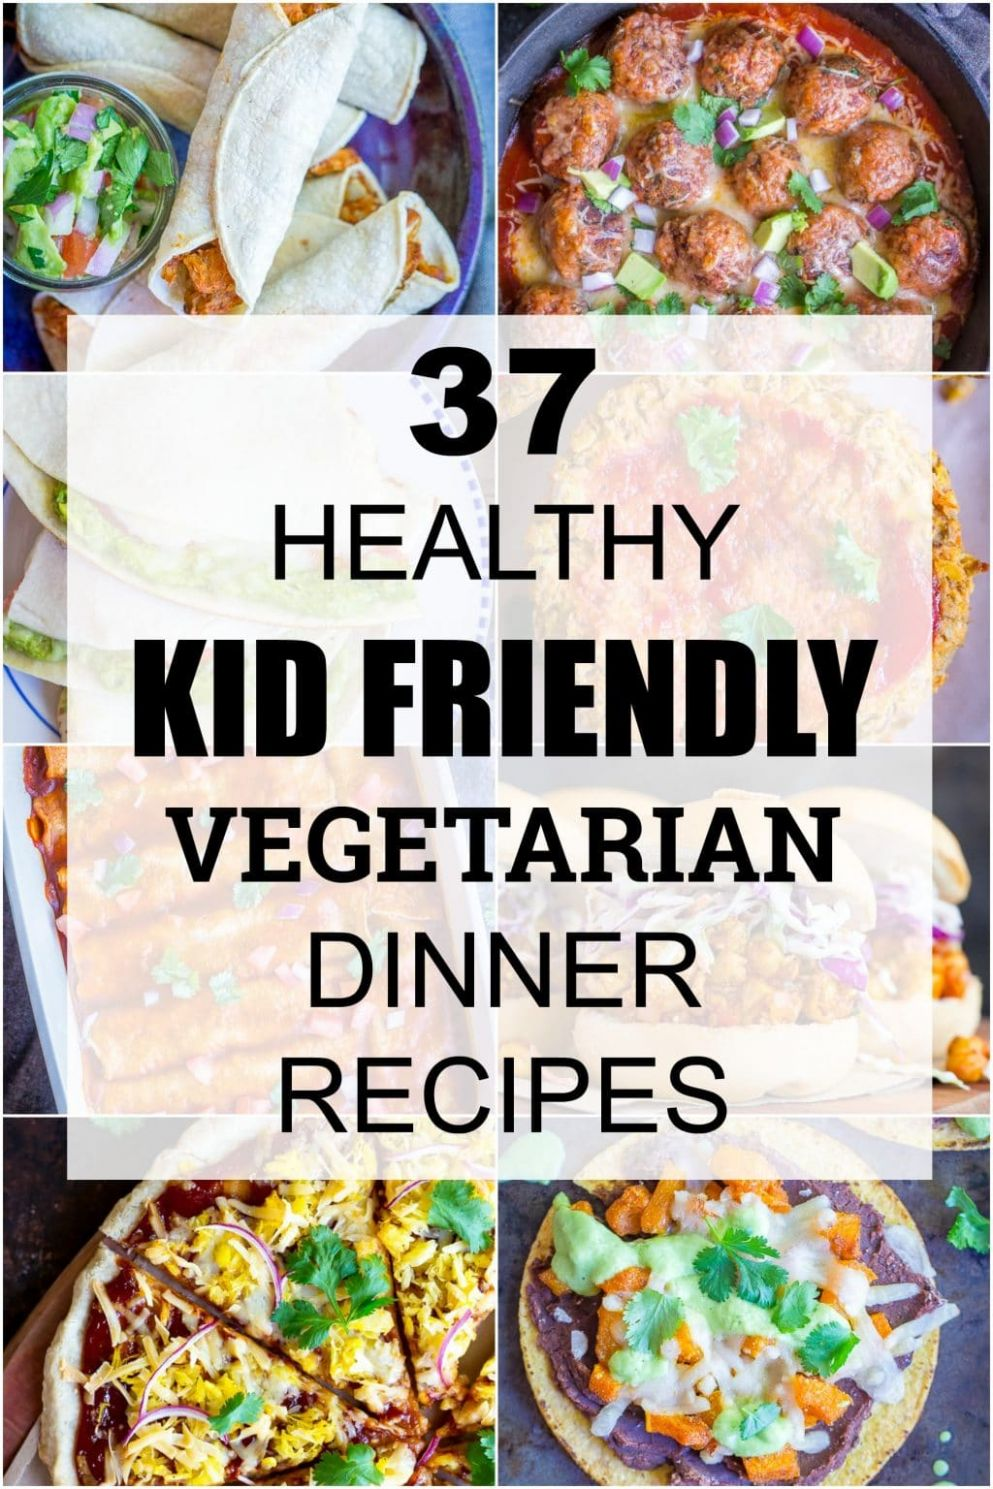 10 Healthy Kid Friendly Vegetarian Dinner Recipes - She Likes Food